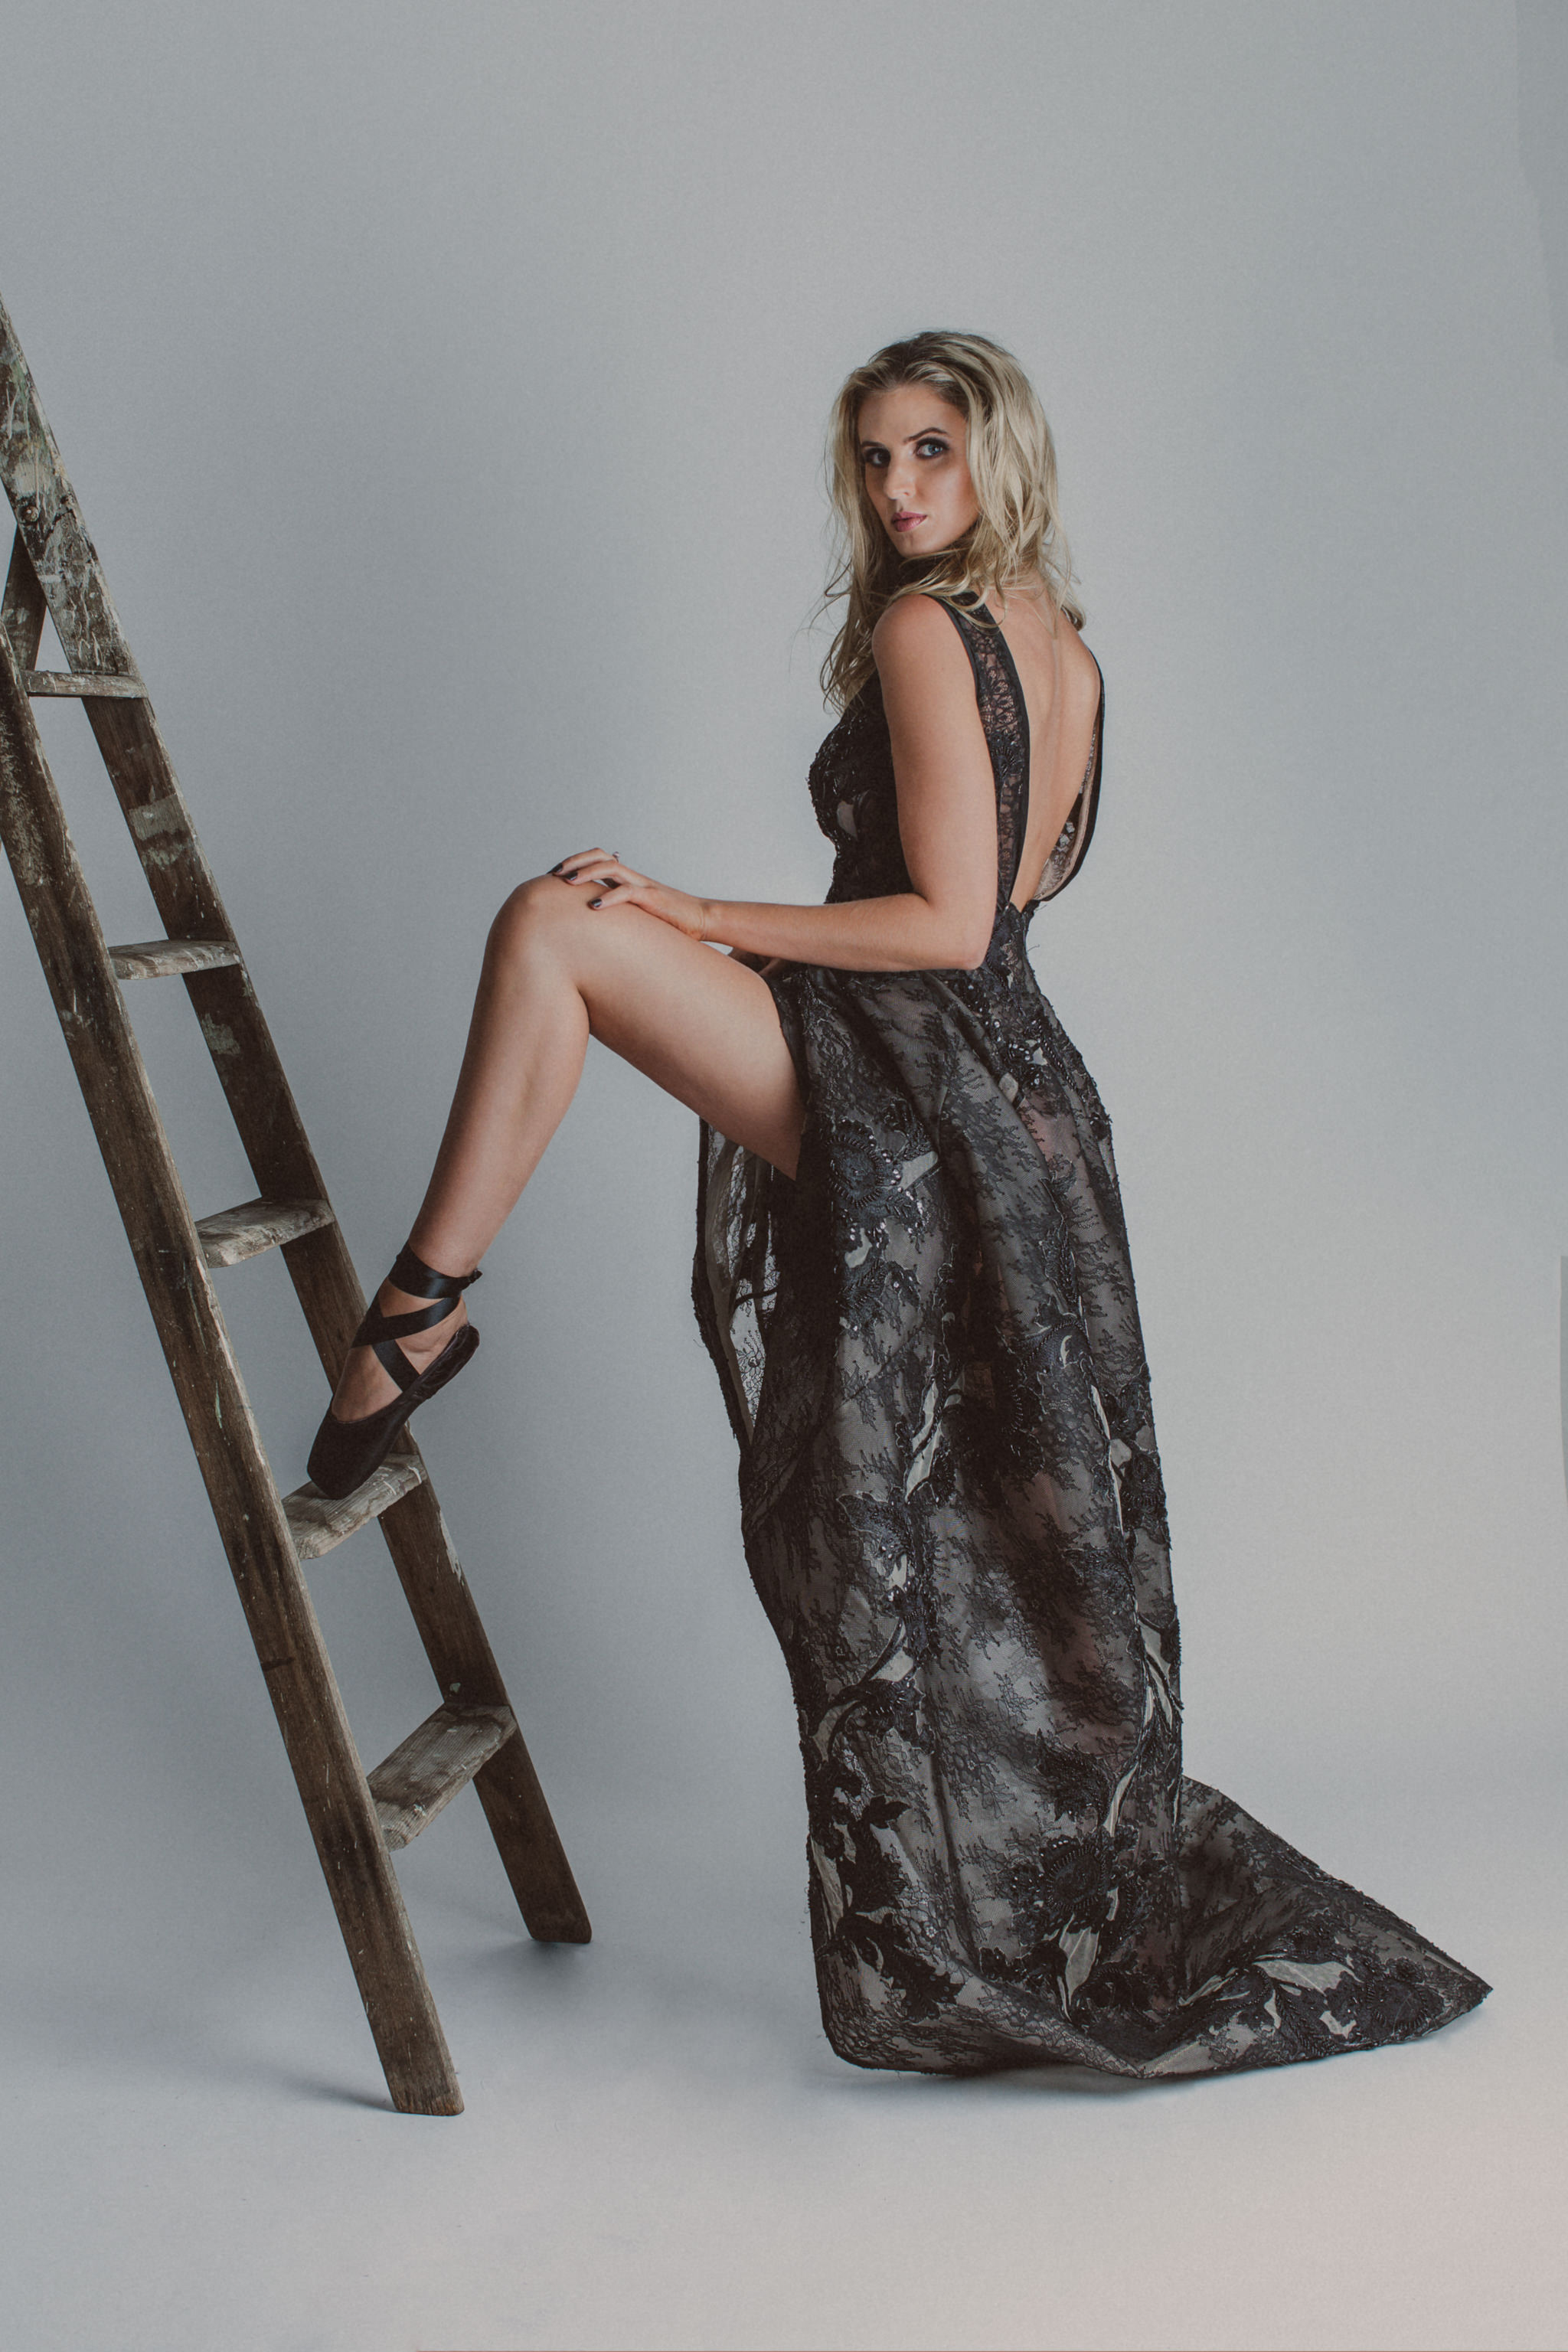 creative studio photographer - girl on ladder in black dress